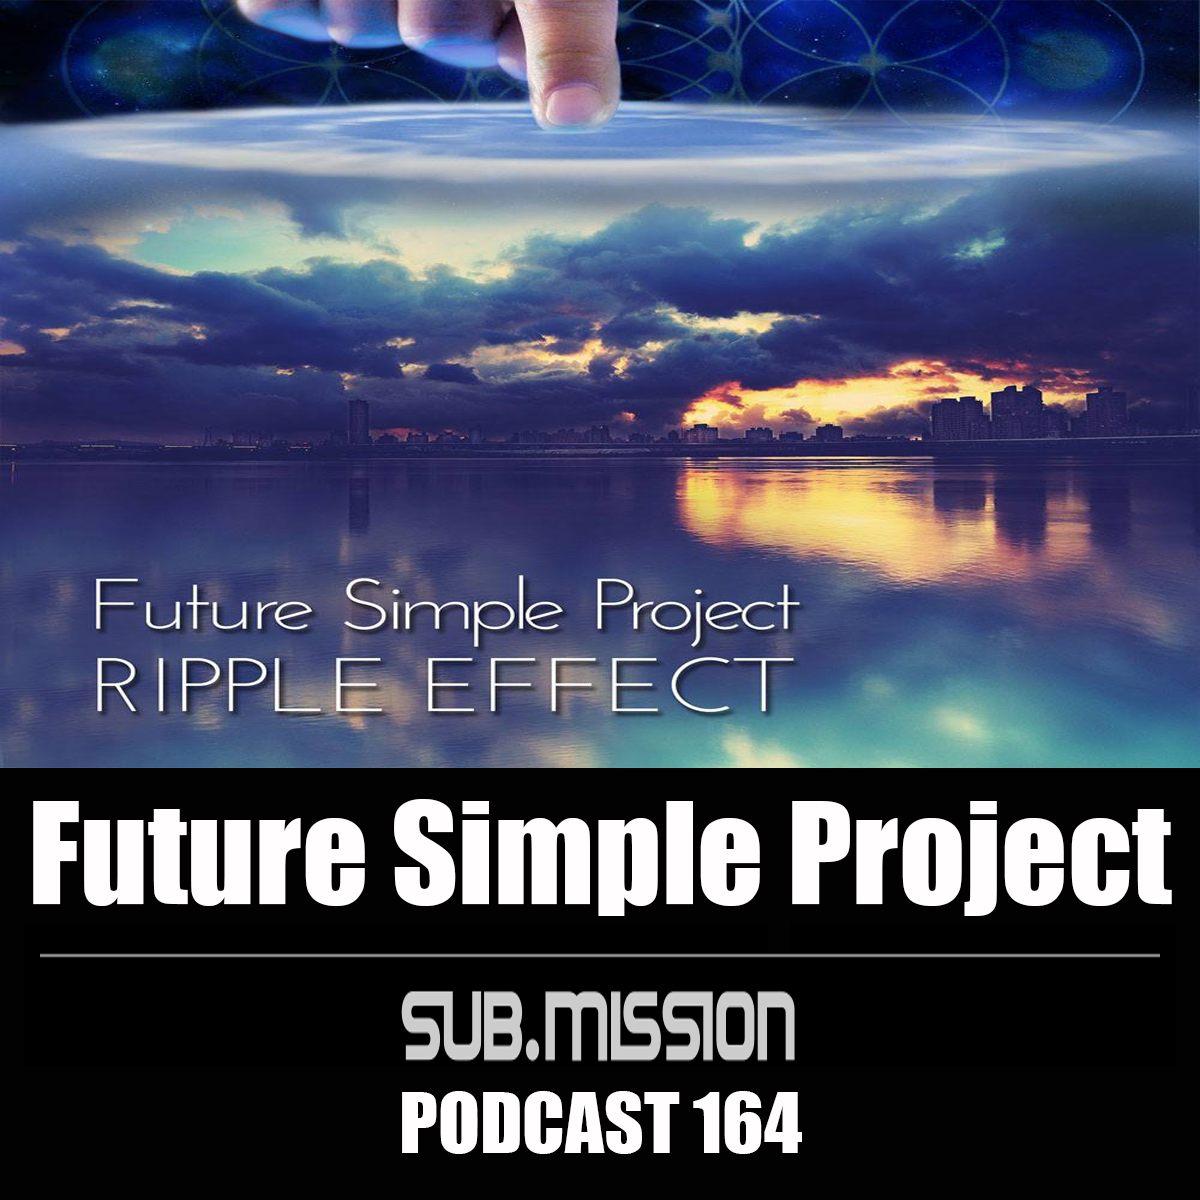 Future Simple Project Releases Summer 2015 Podcast Via Sub.Mission